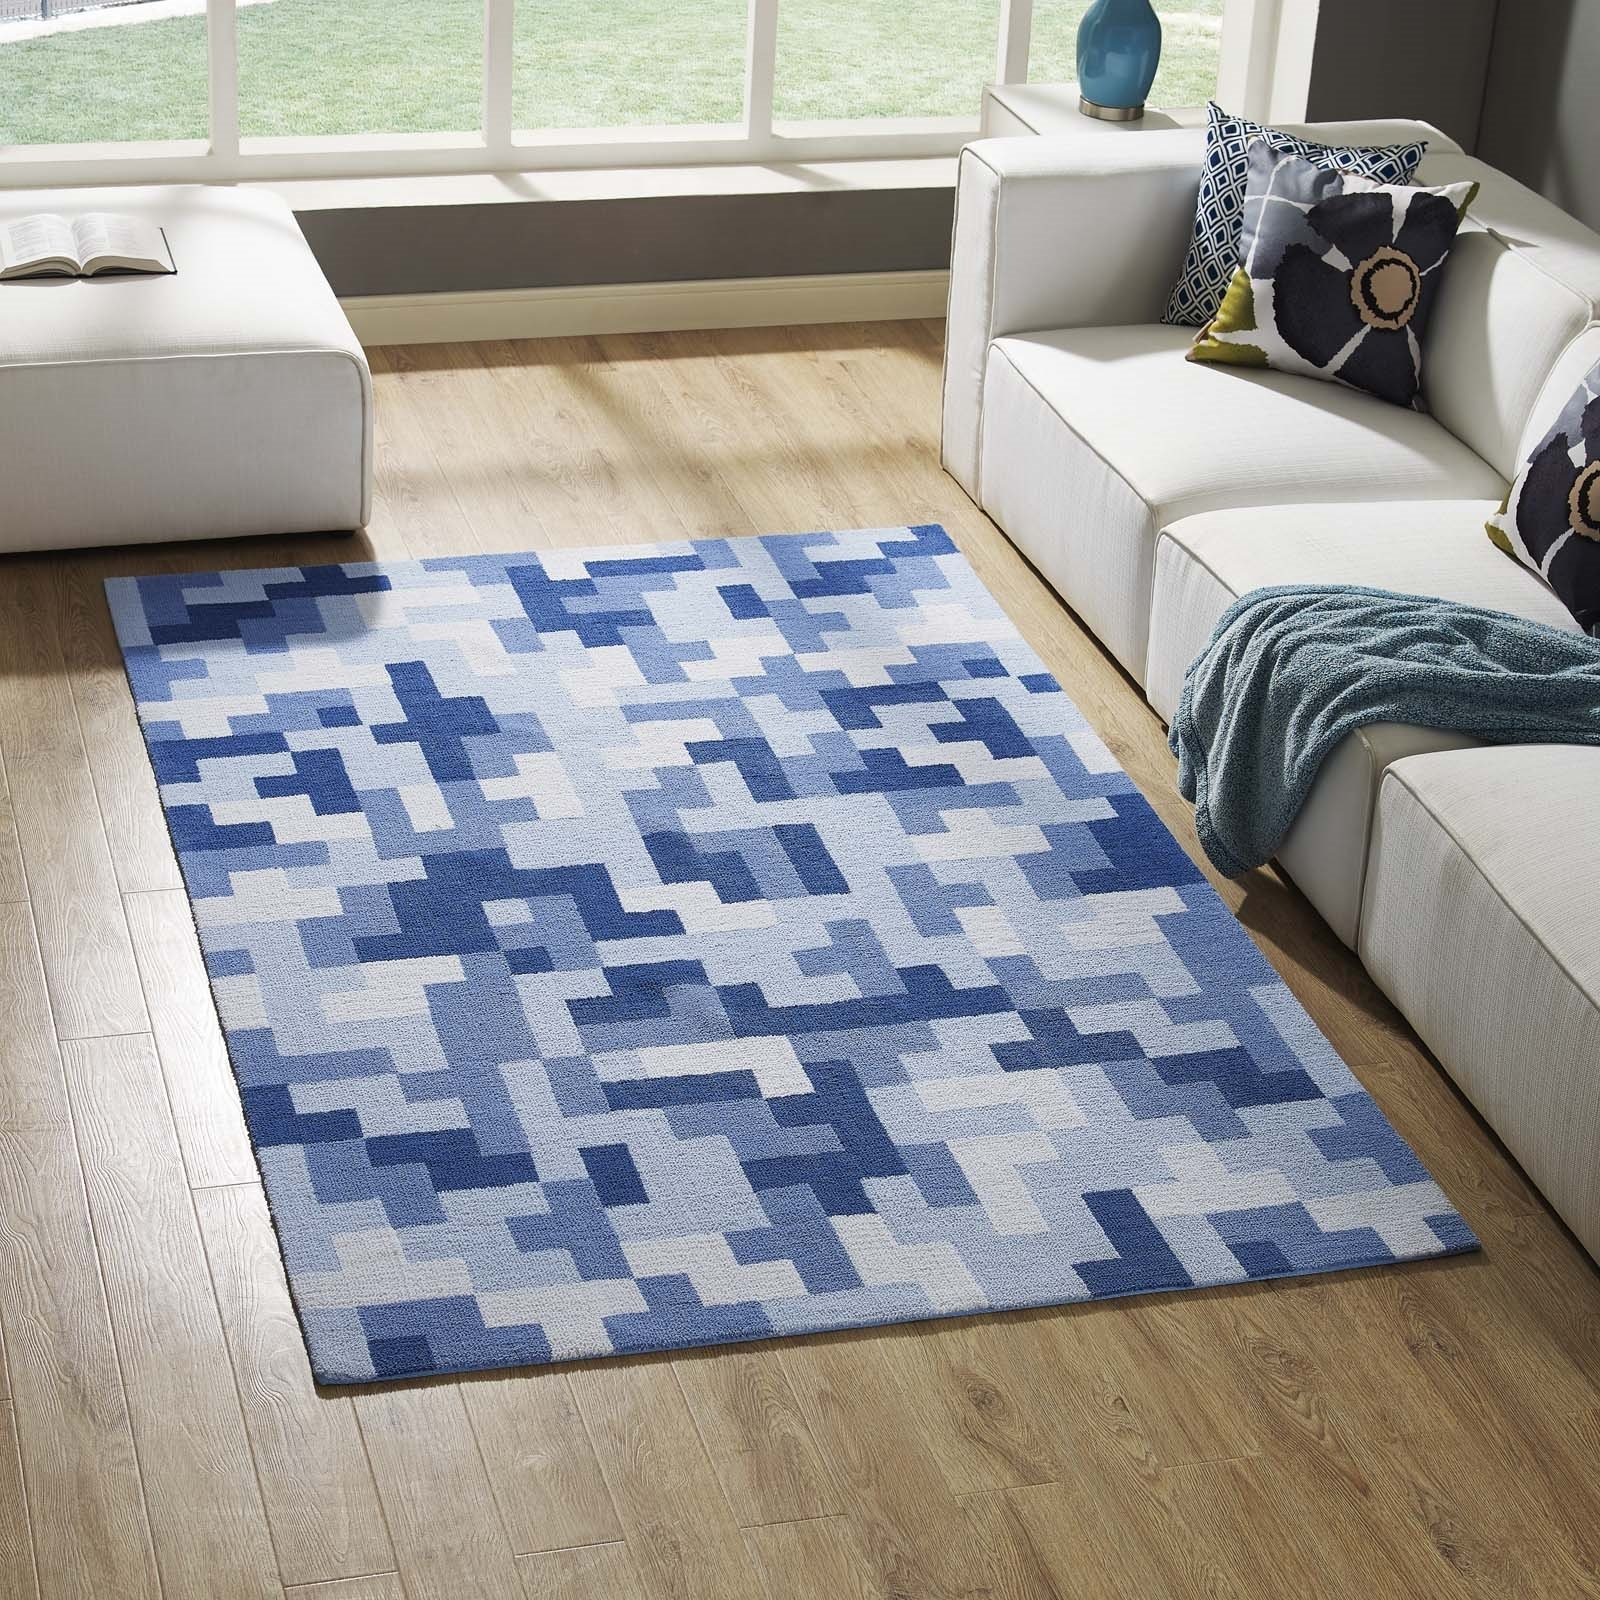 Andela Interlocking Block Mosaic 5x8 Area Rug in Multicolored Light and Dark Blue Product Image